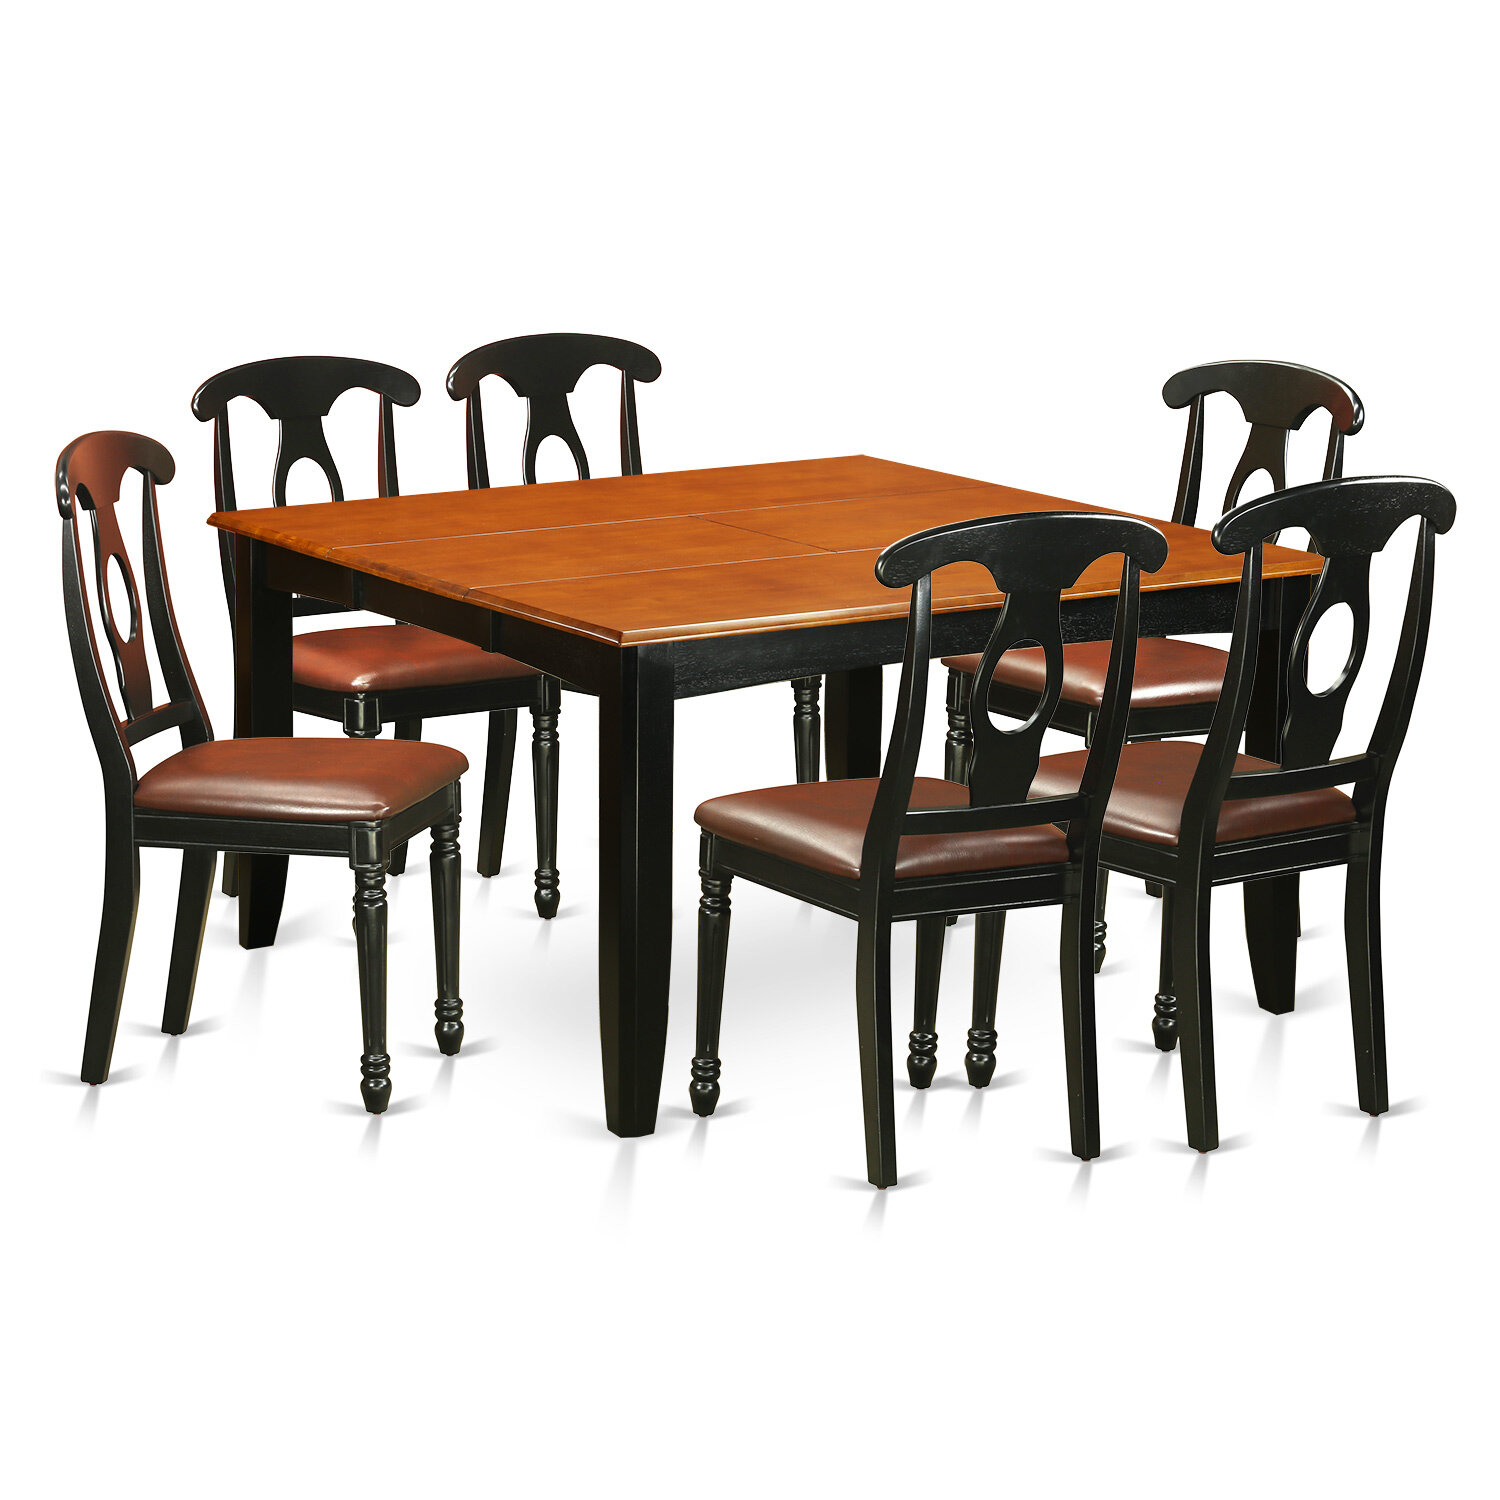 Pilning Contemporary 7 Piece Dining Set